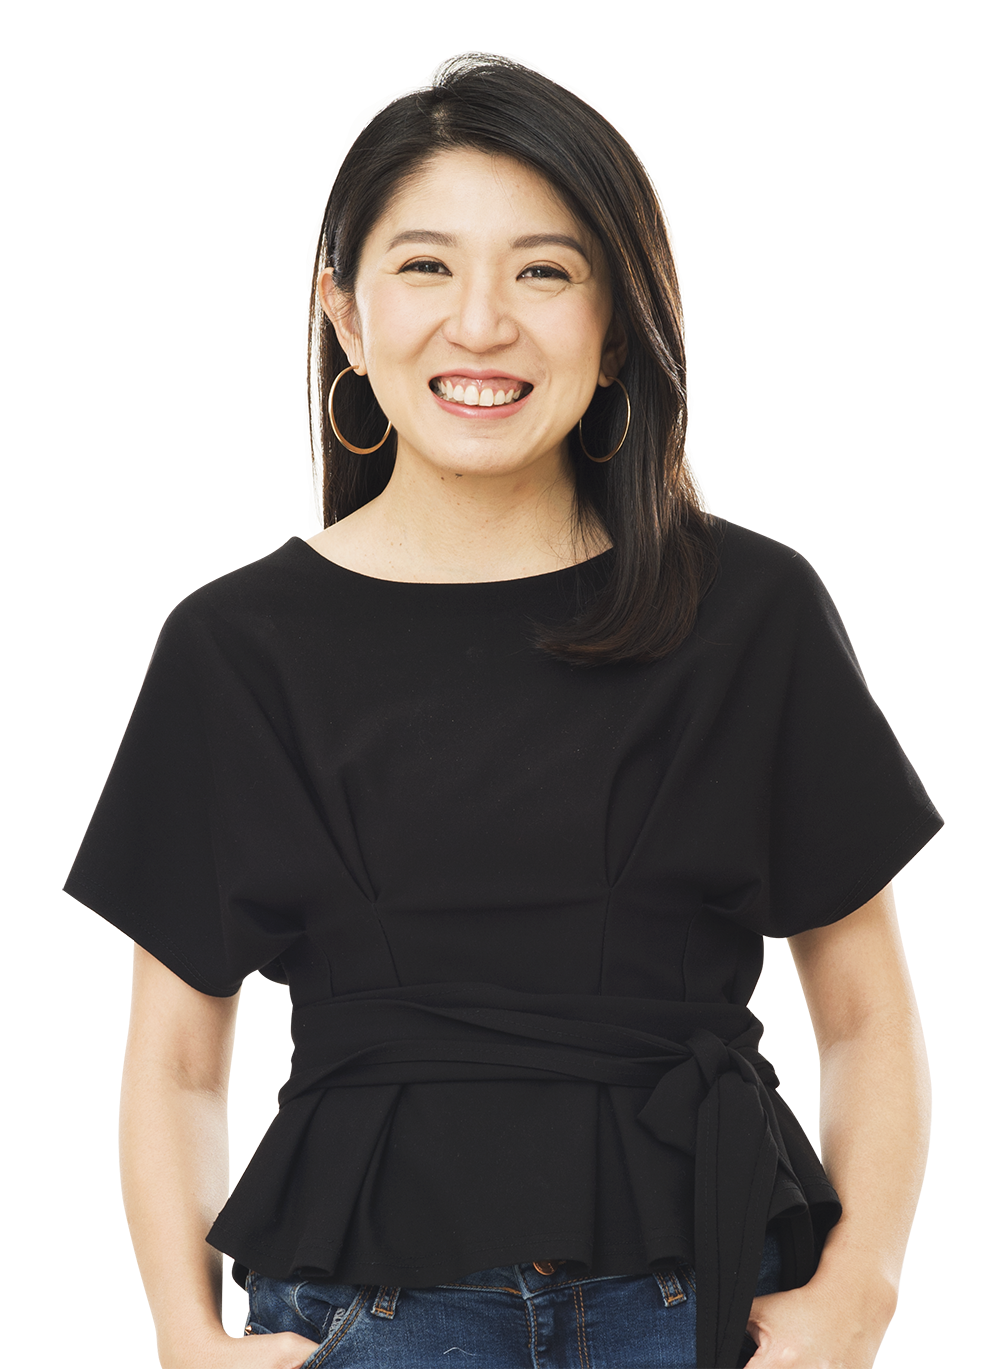 An interview with Yeo Bee Yin